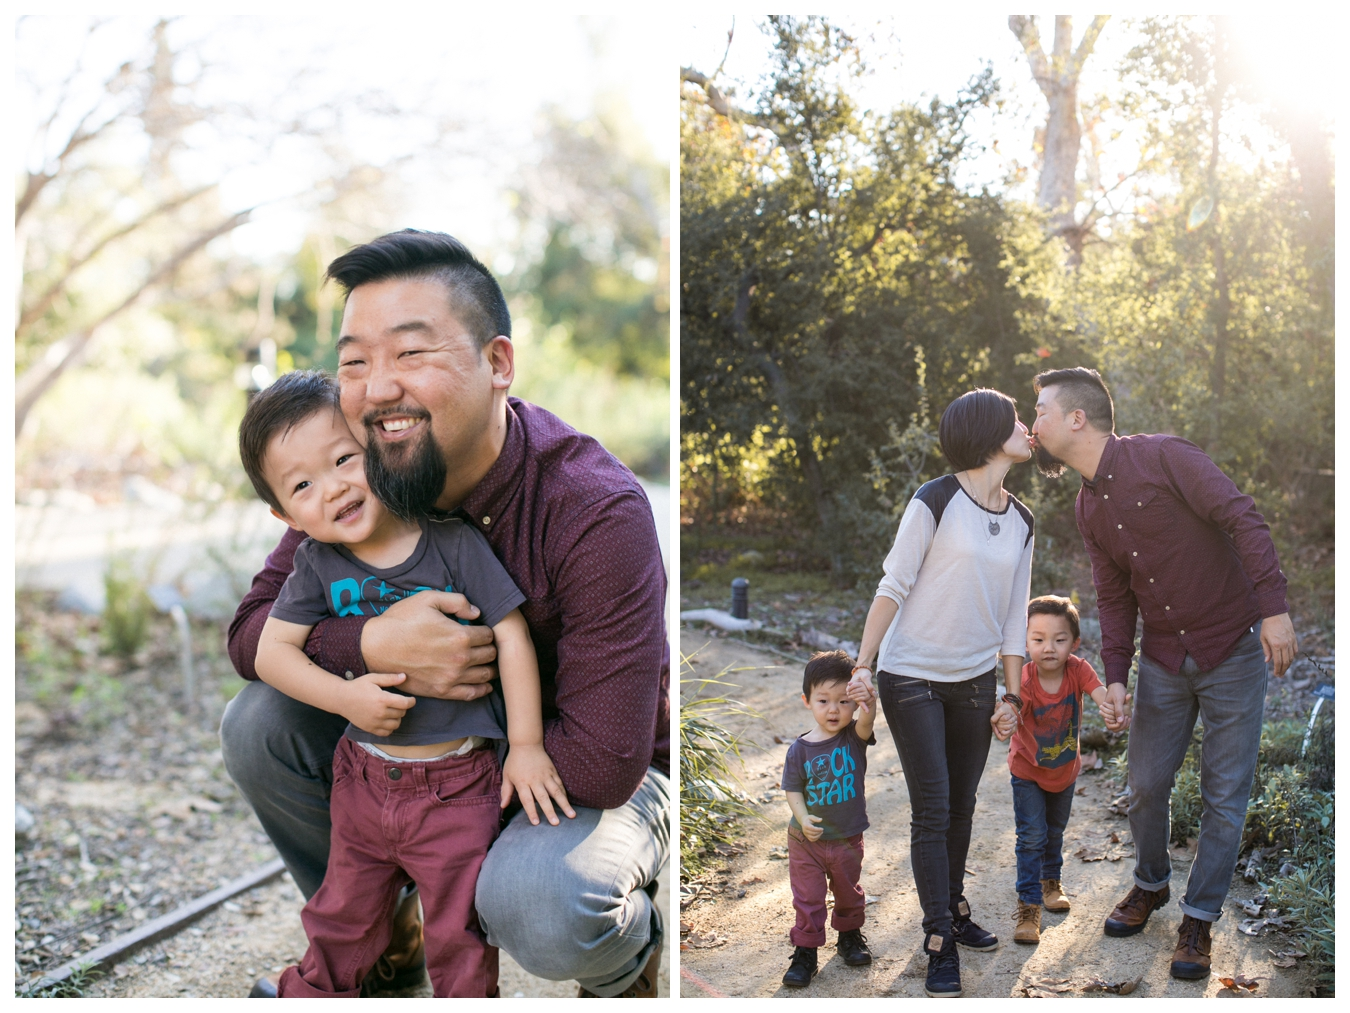 los a  ngeles lifestyle family portraits| lily glass photography